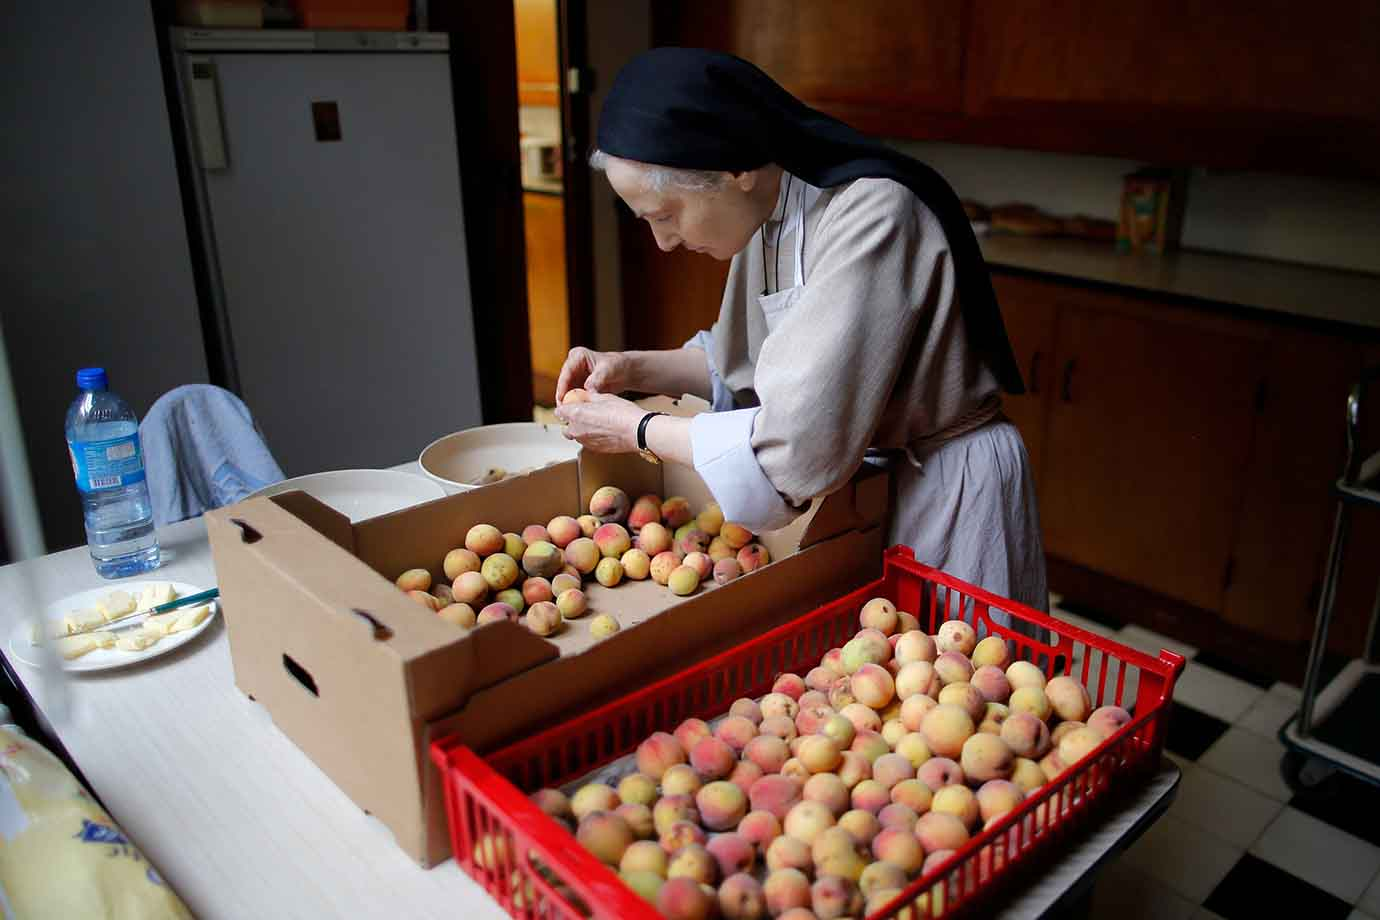 A sister, member of the Clarisses community, handpicks apricots at the Saint Clare Monastery in Nant